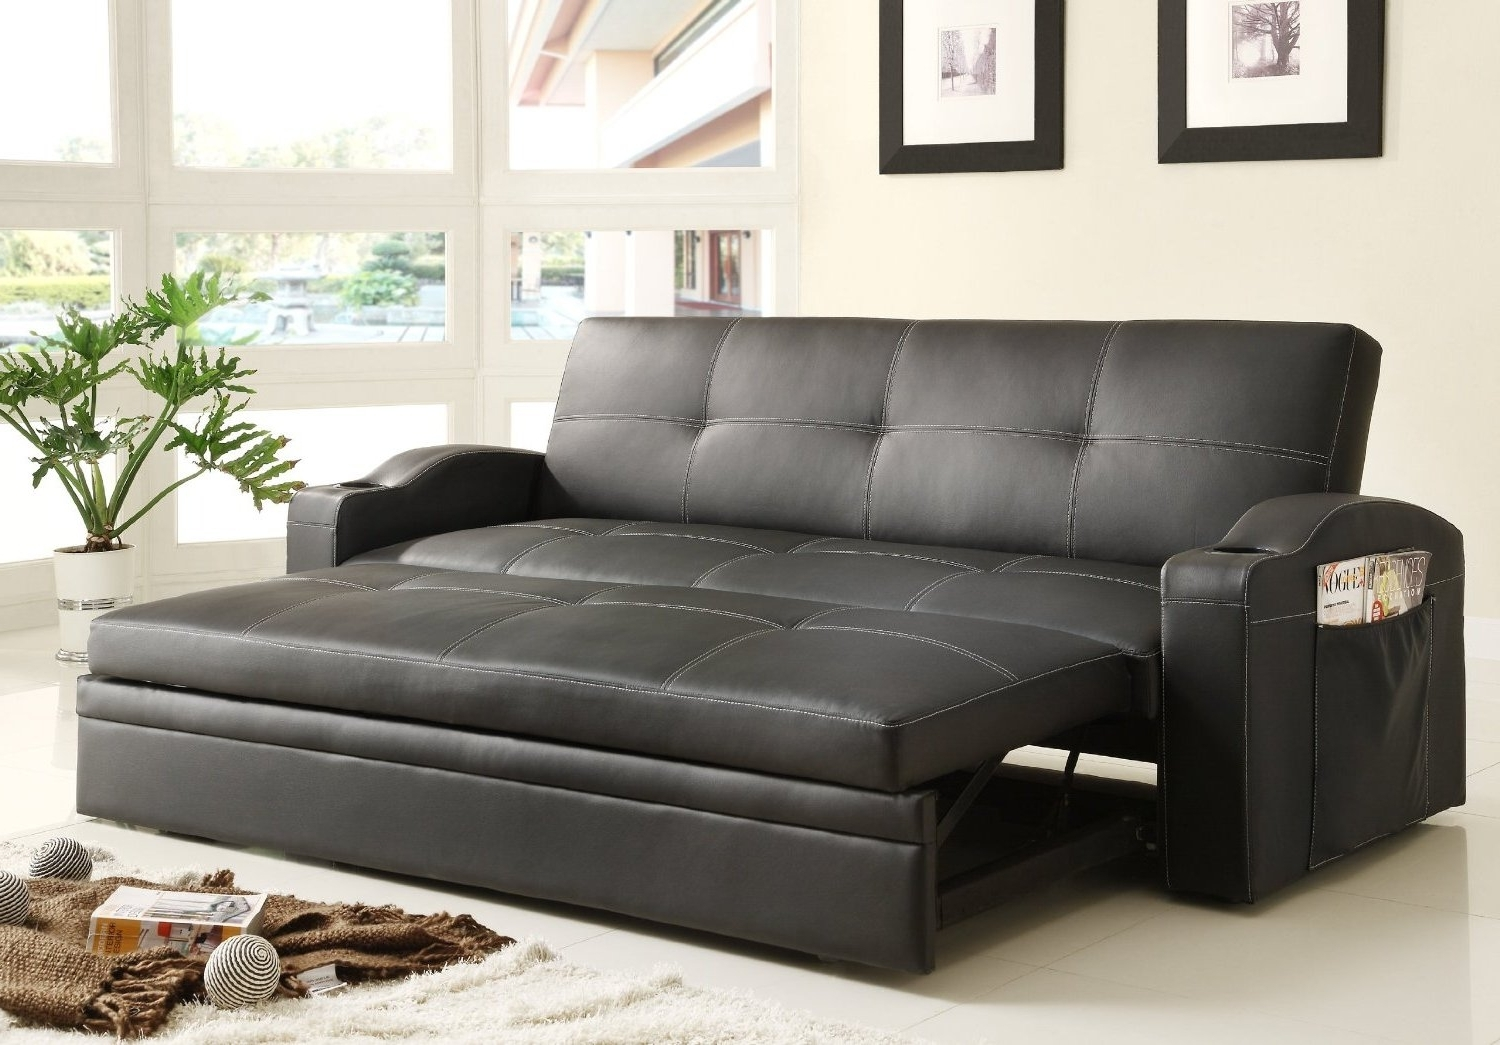 Queen Size Sofas Regarding Widely Used Adjustable Queen Size Sofa Bed Black Color Upholstered In Black Bi (Gallery 7 of 15)